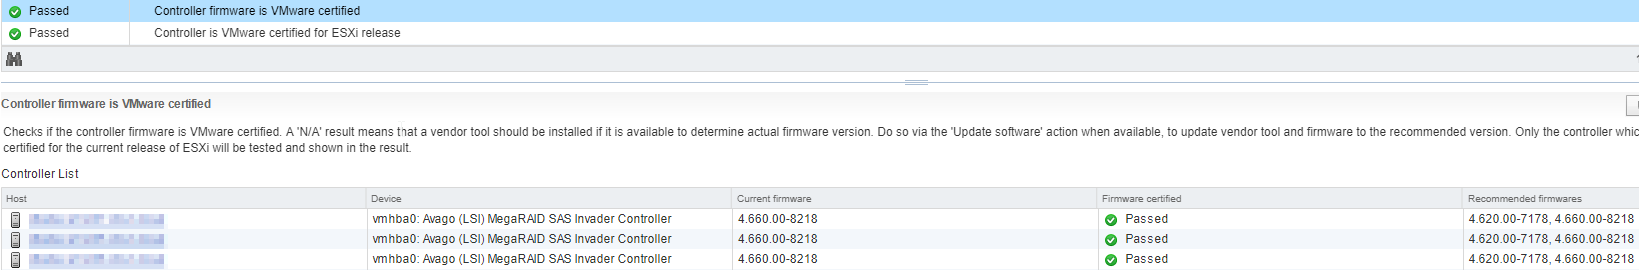 vSAN Health and Controller firmware N/A | Virtual Allan